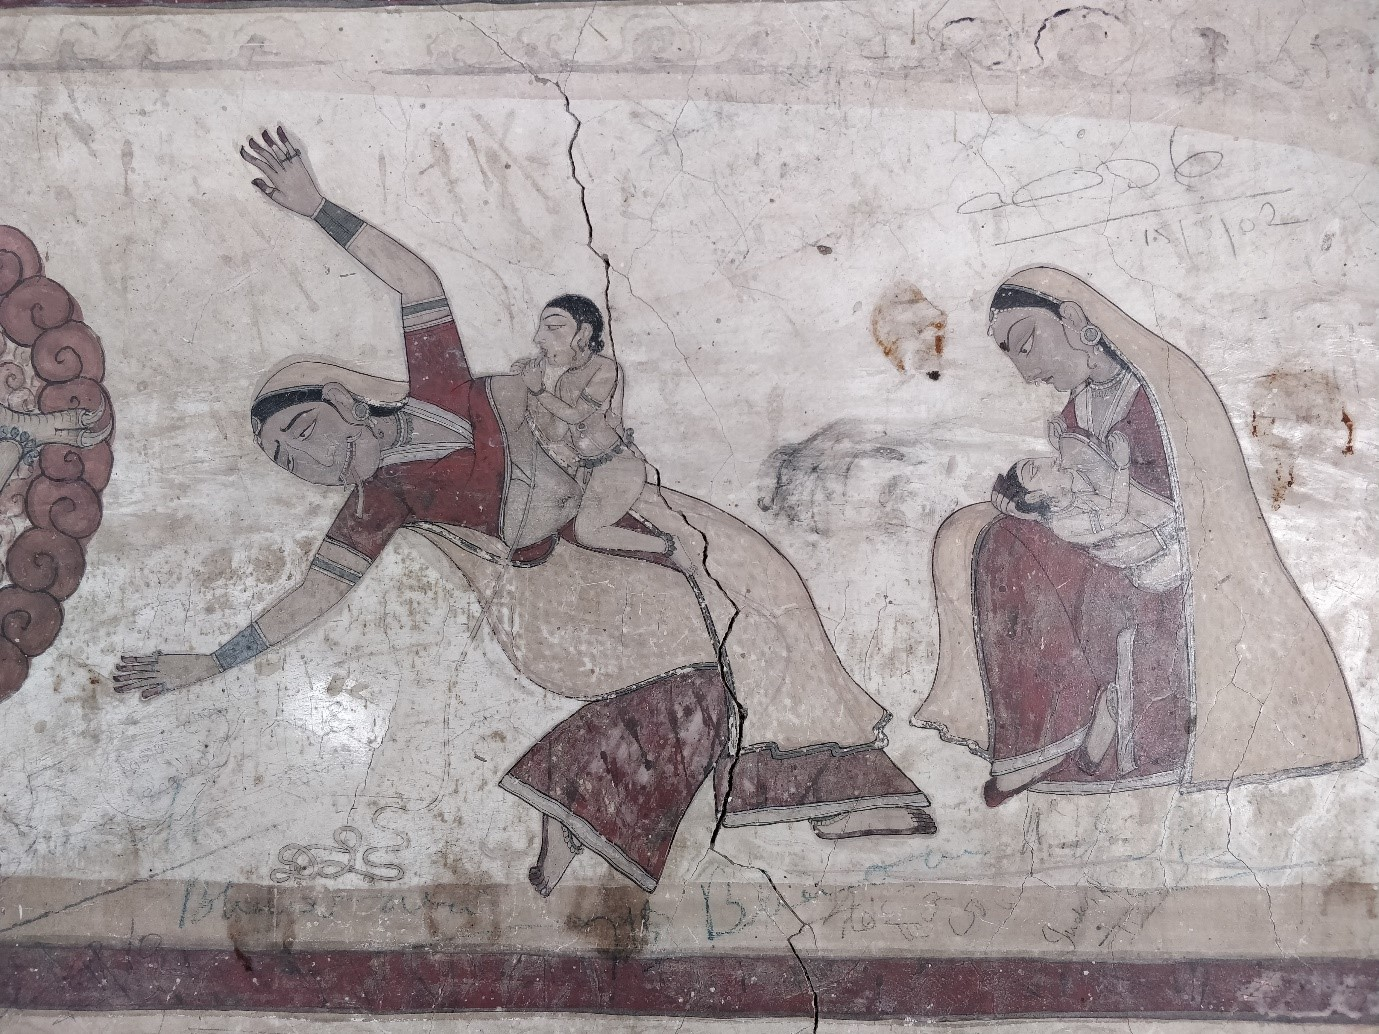 Fig.1.Krishna slaying Putana, eastern wall of the Devi Kothi, Chamba. (Courtesy:Sarang Sharma)